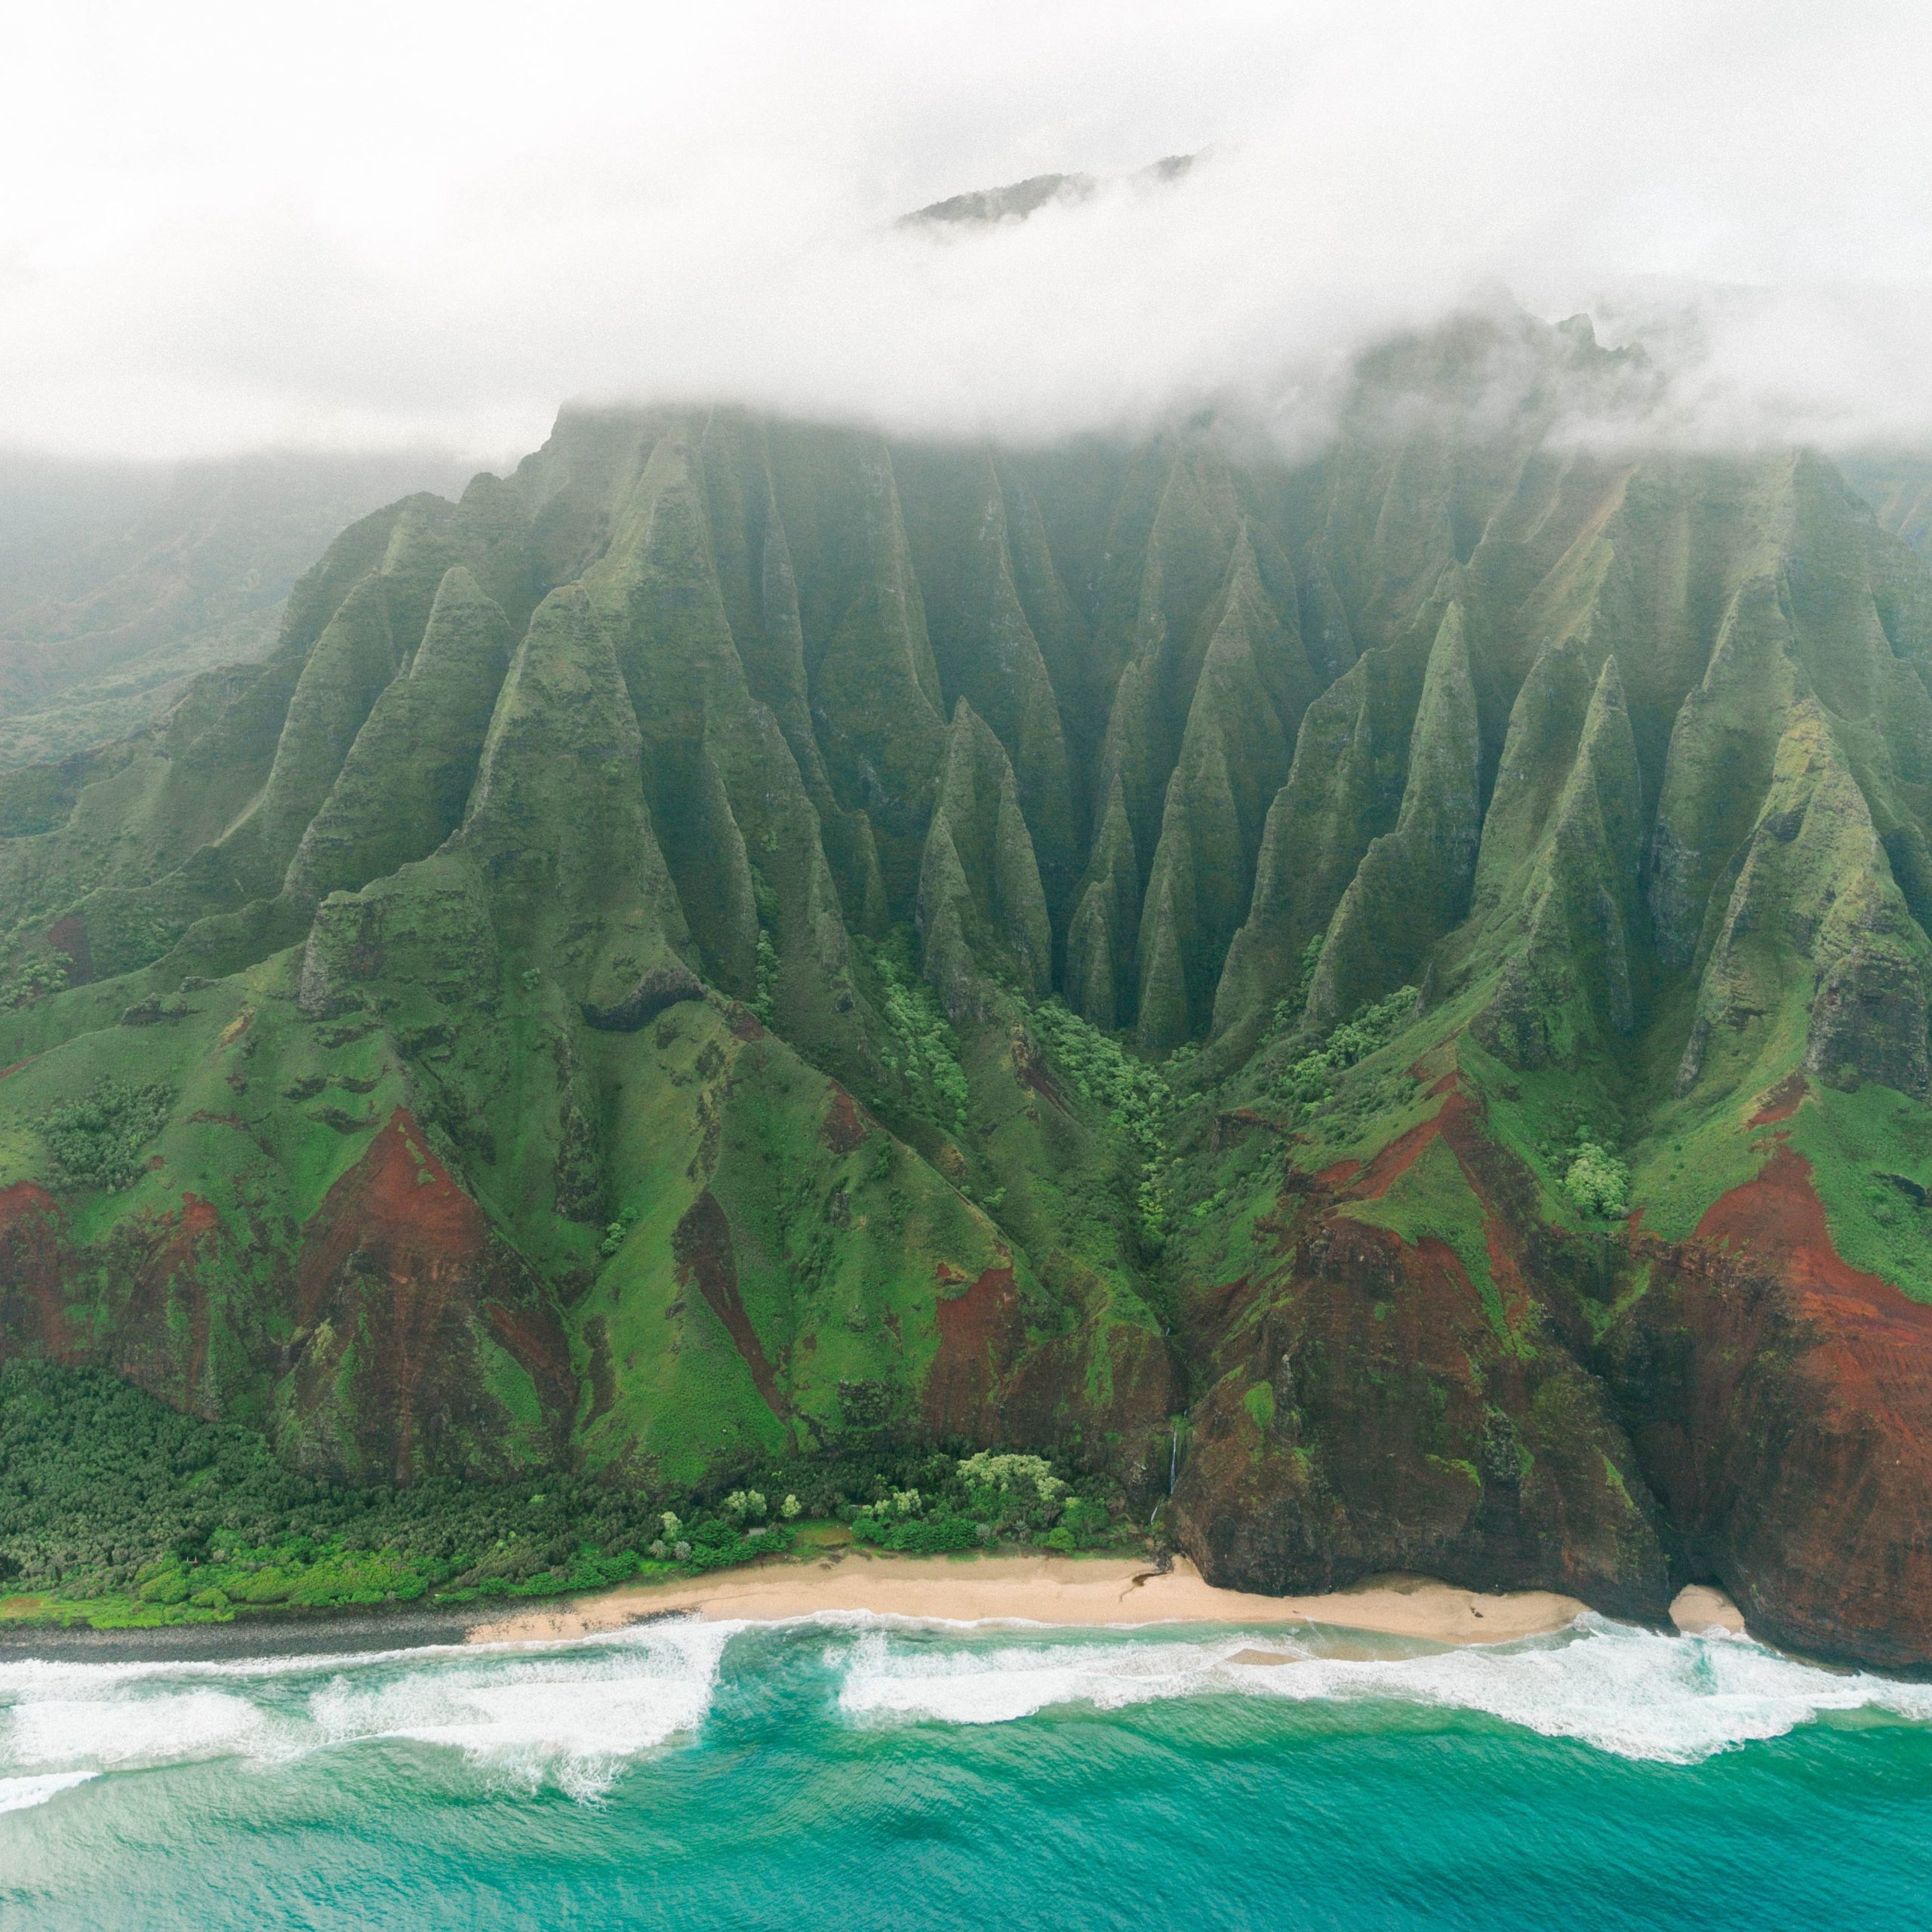 Green cliffs with misty clouds on the beach in Kauai with bright blue ocean water below